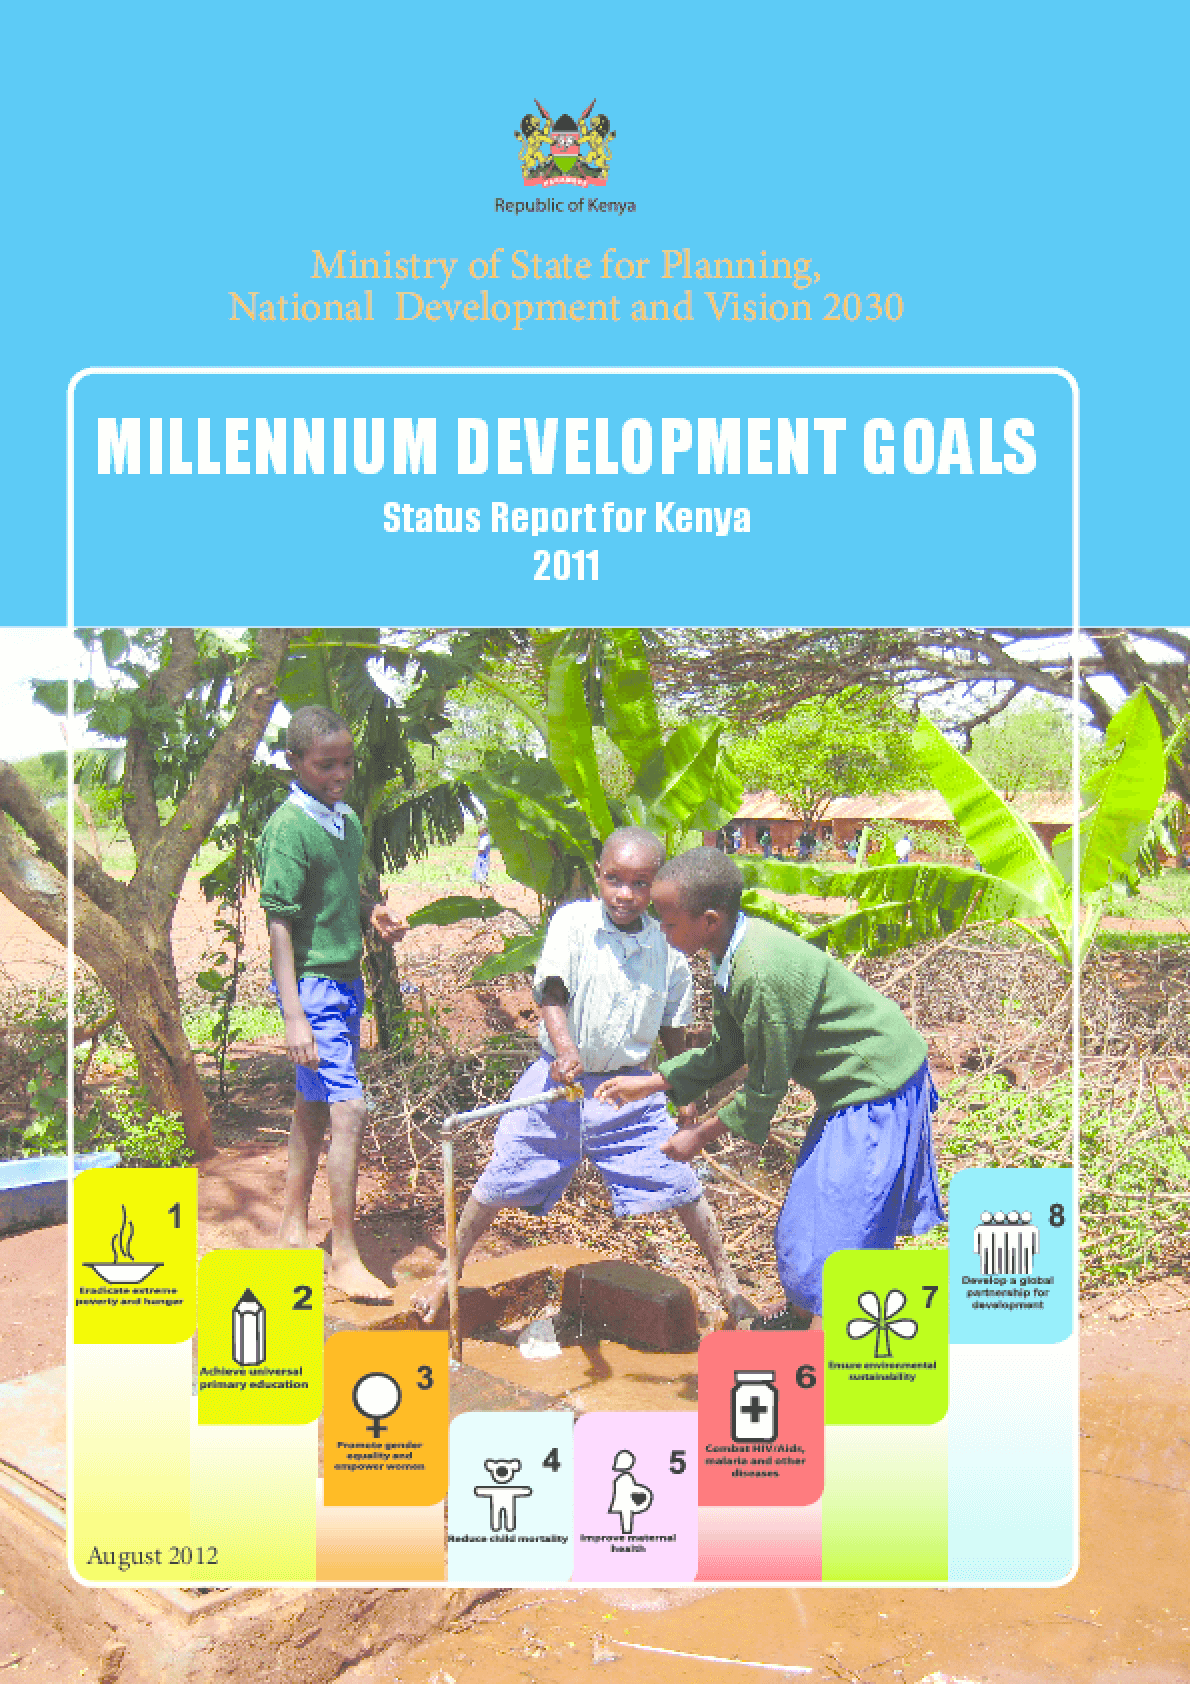 Millennium Development Goals: Status Report for Kenya 2011